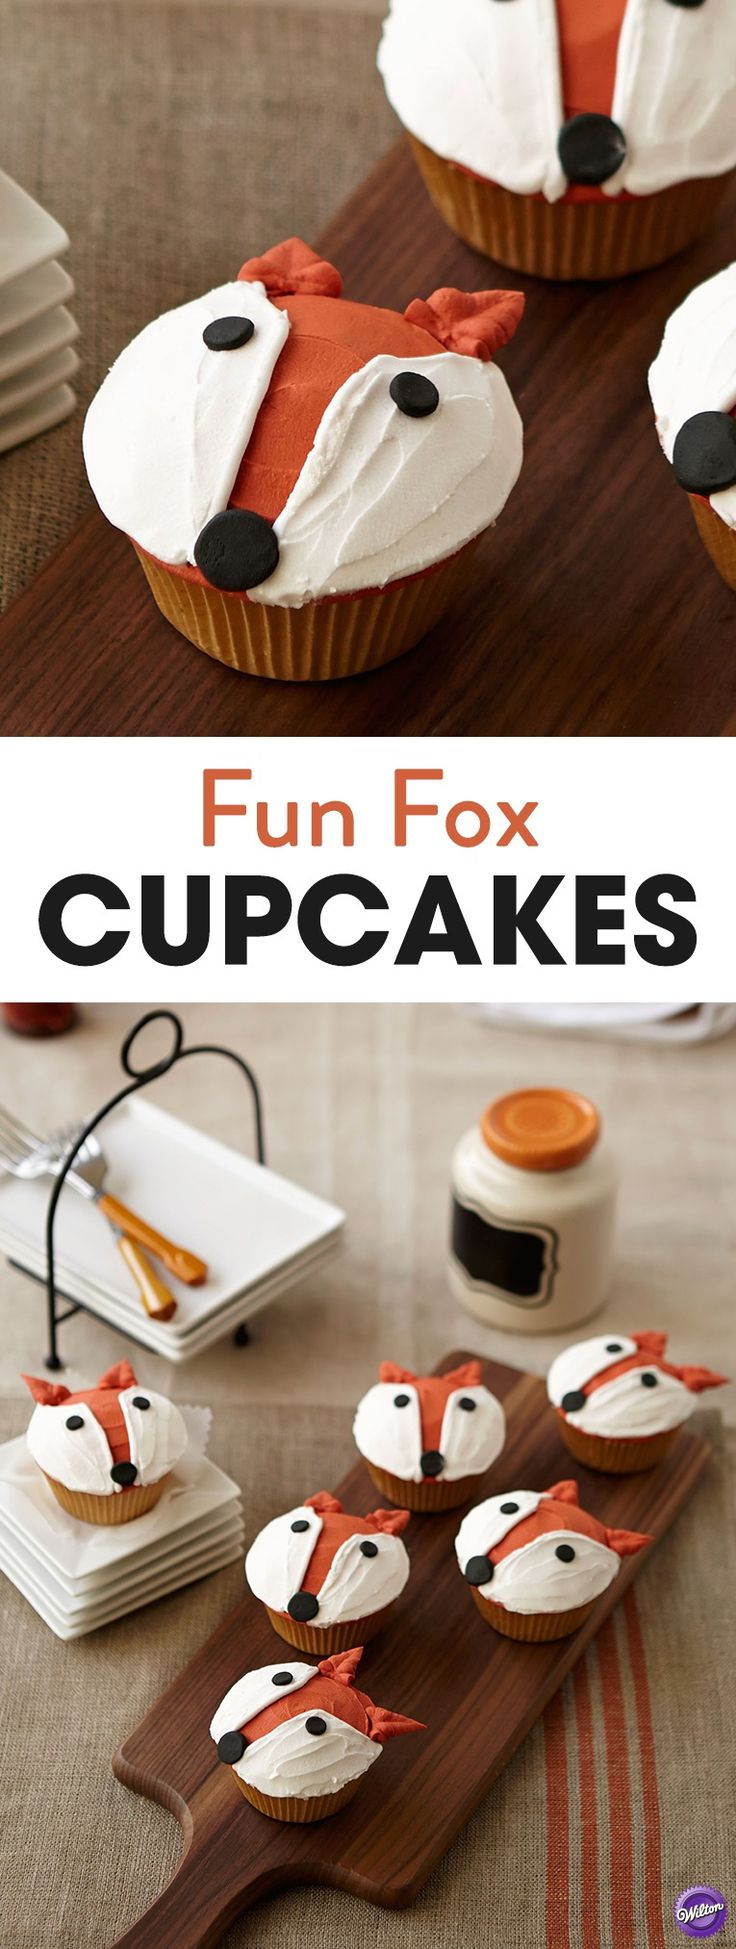 Fun Fox Cupcakes - Using simple decorating techniques of dots for facial features and pull-out leaves for ears, these fun Fox Cupcakes will be perfect for a woodland-themed party!